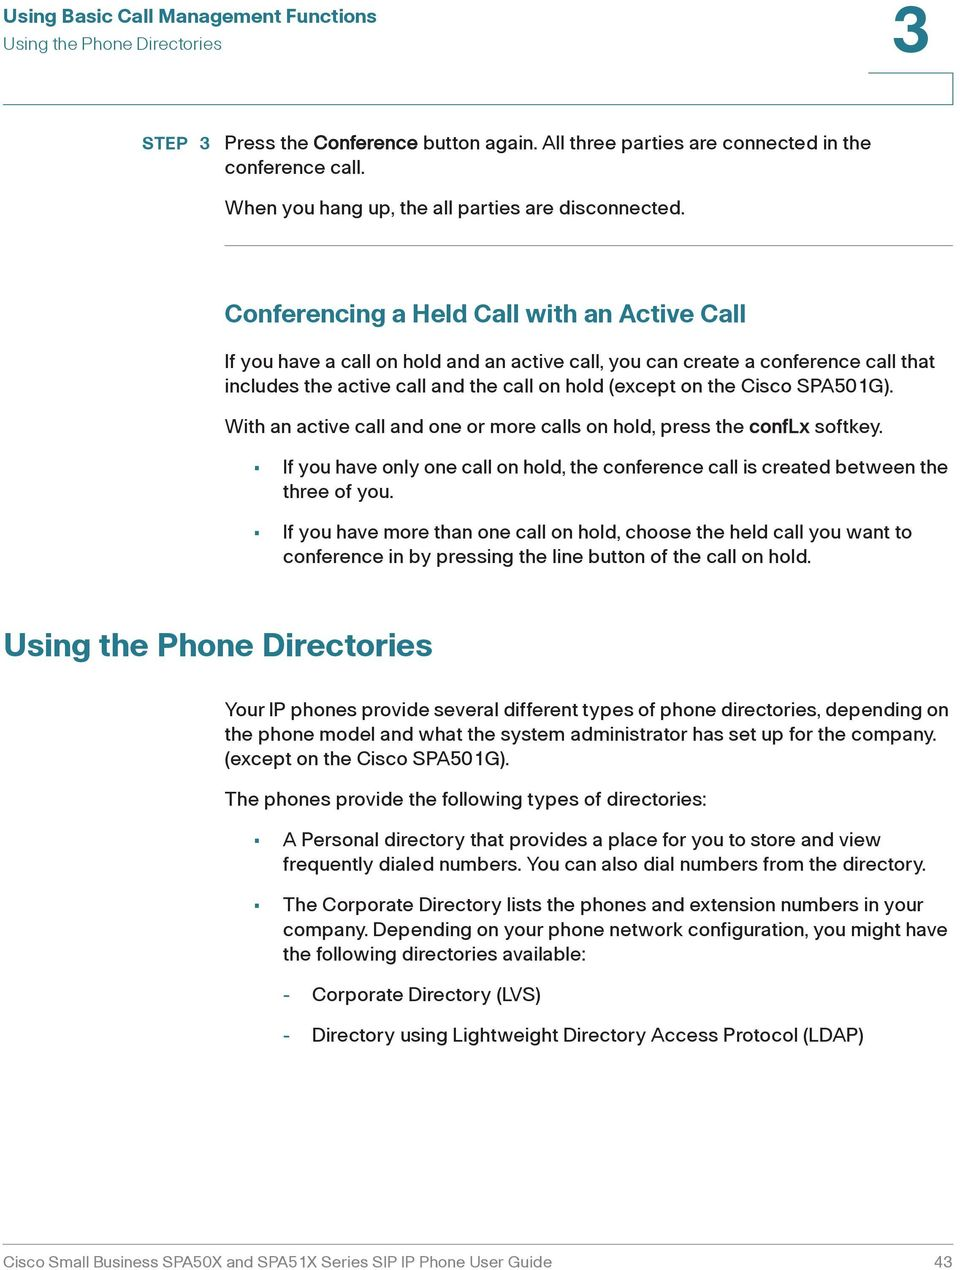 SPA501G). With an active call and one or more calls on hold, press the conflx softkey. If you have only one call on hold, the conference call is created between the three of you.